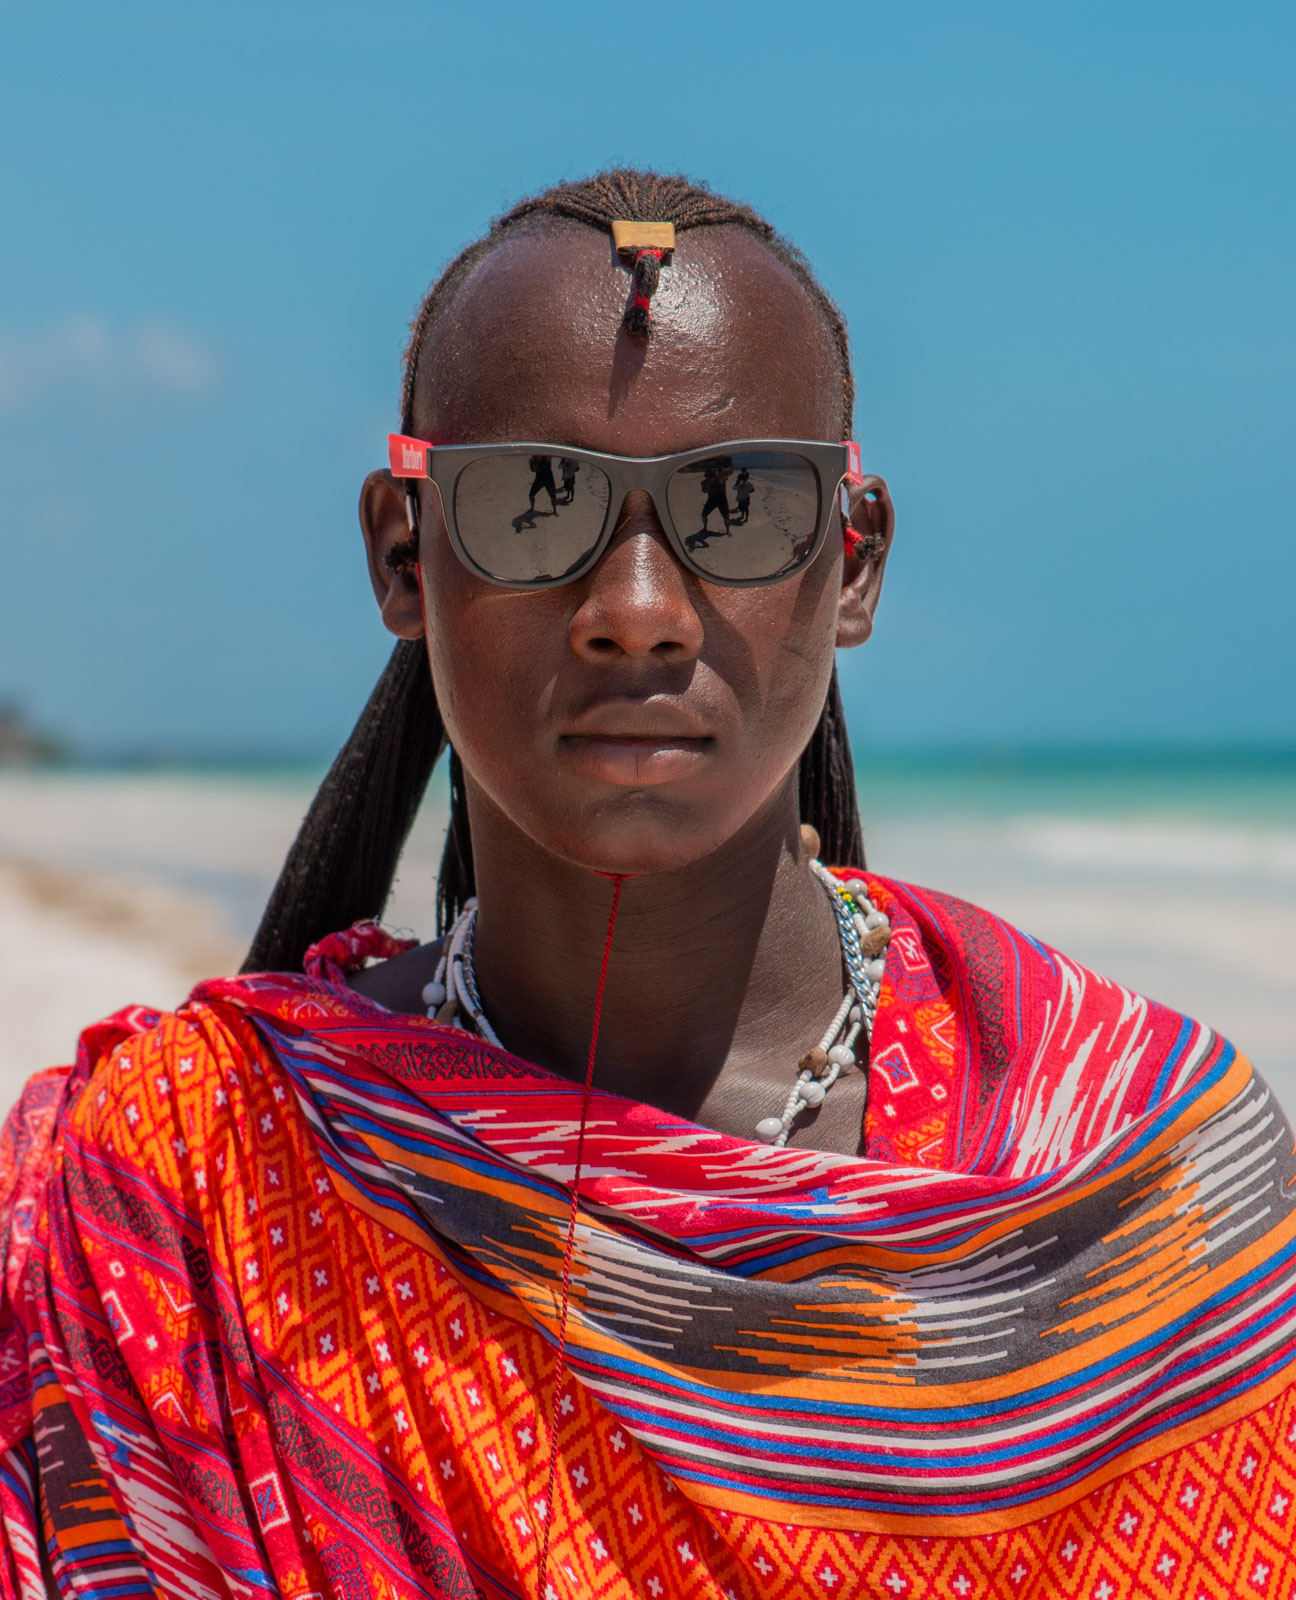 Maasai working on the beaches of Zanzibar